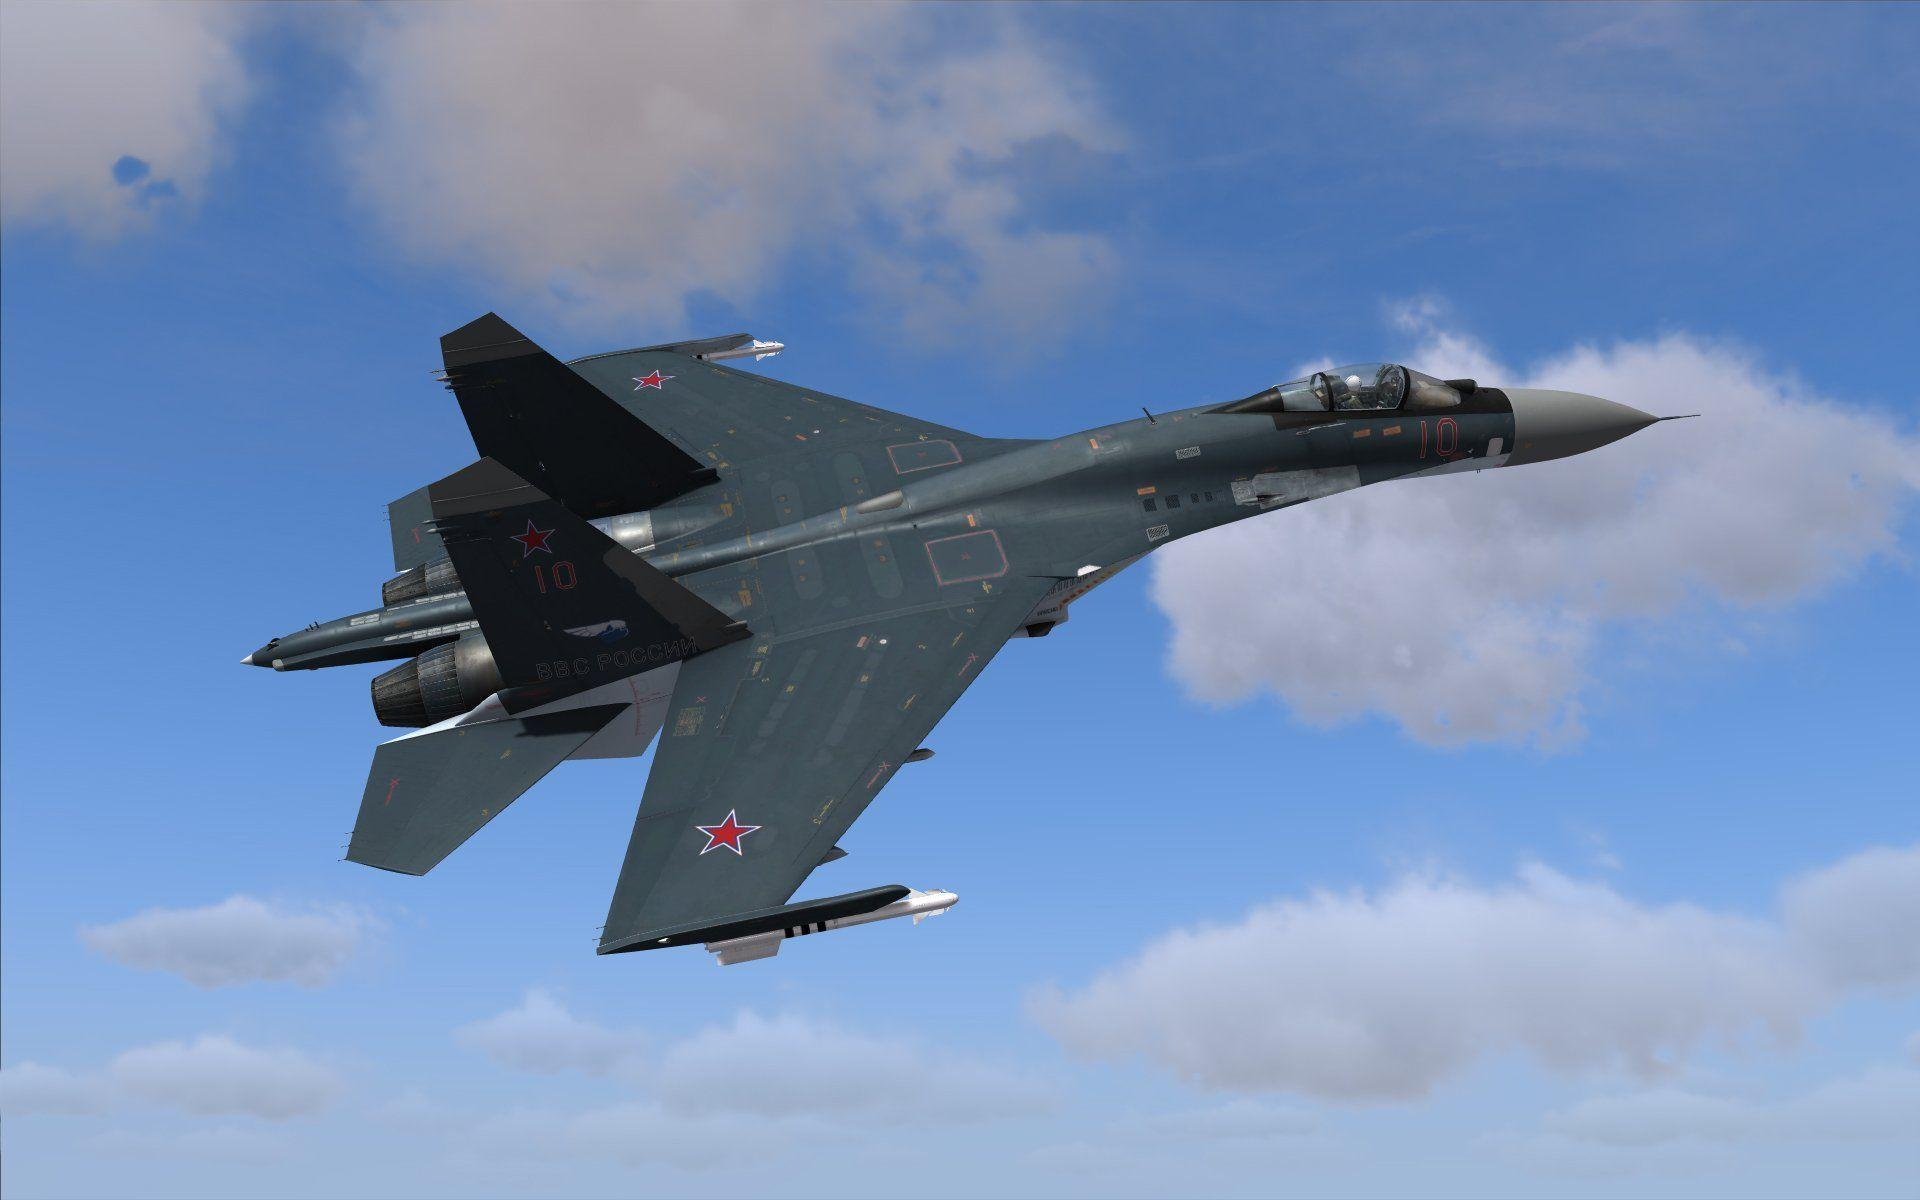 military picture sukhoi su - photo #37